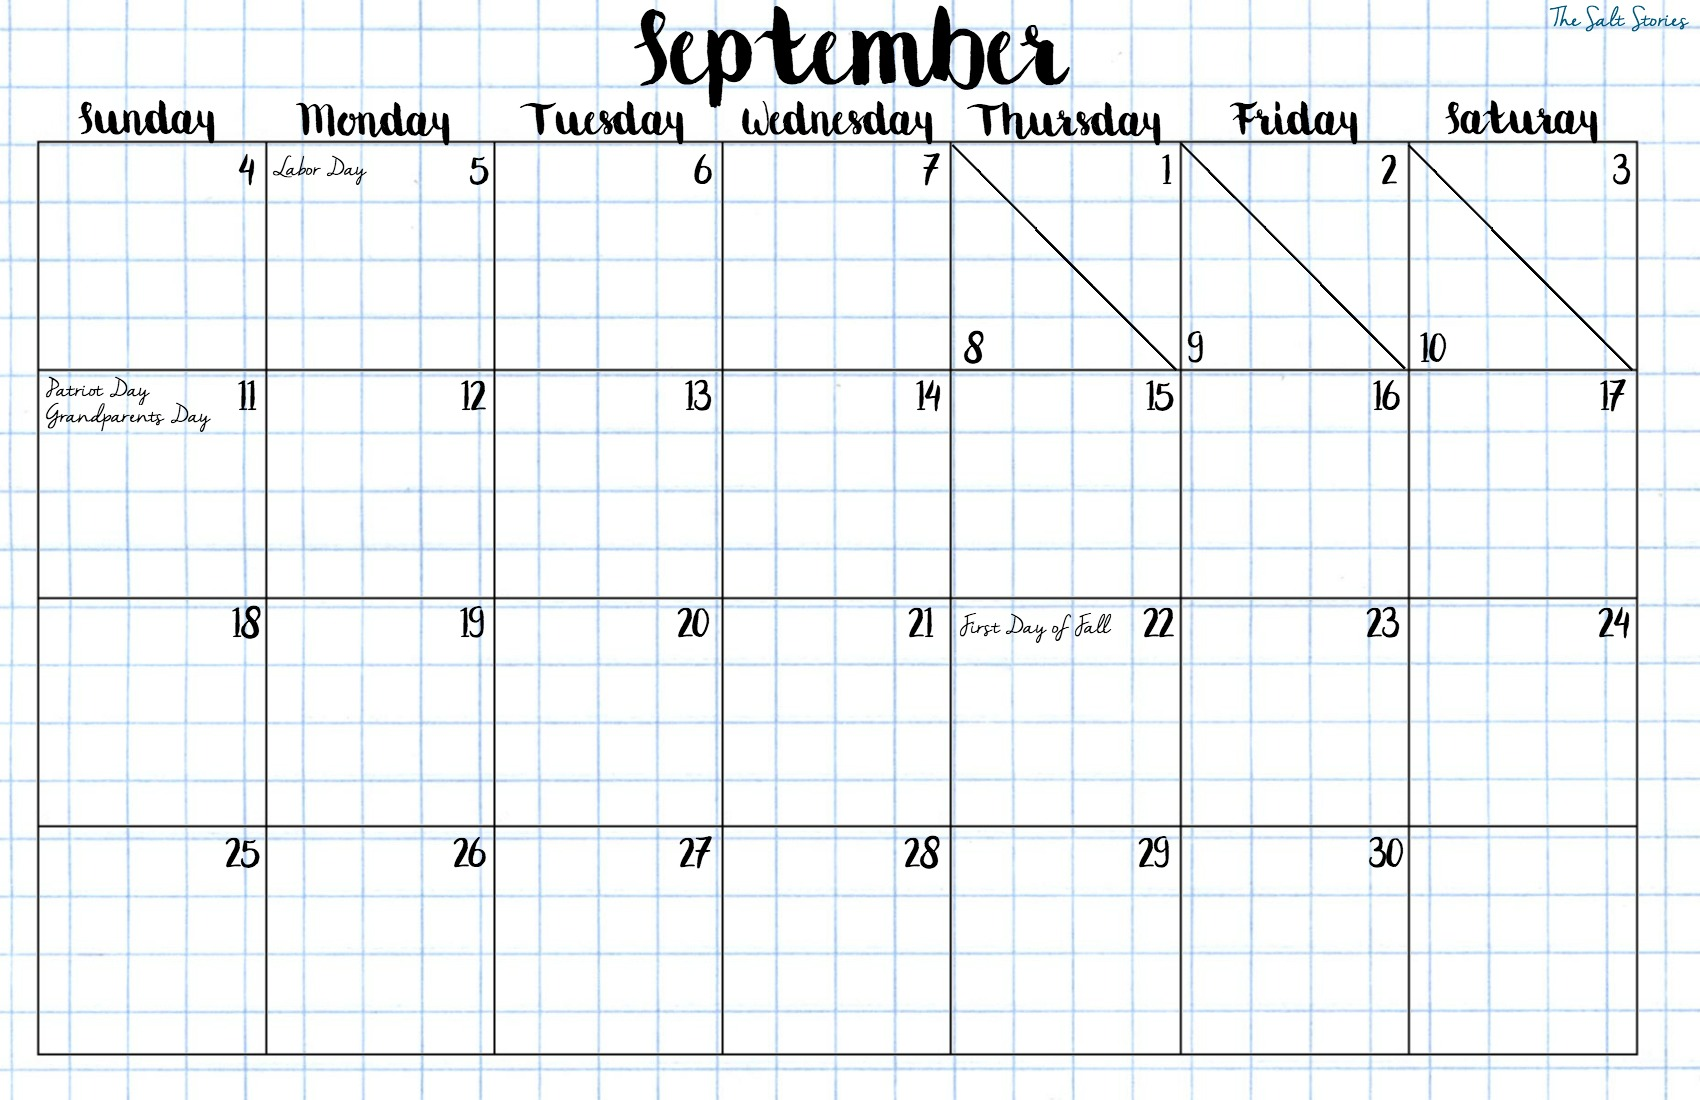 september-calendar-no-saints